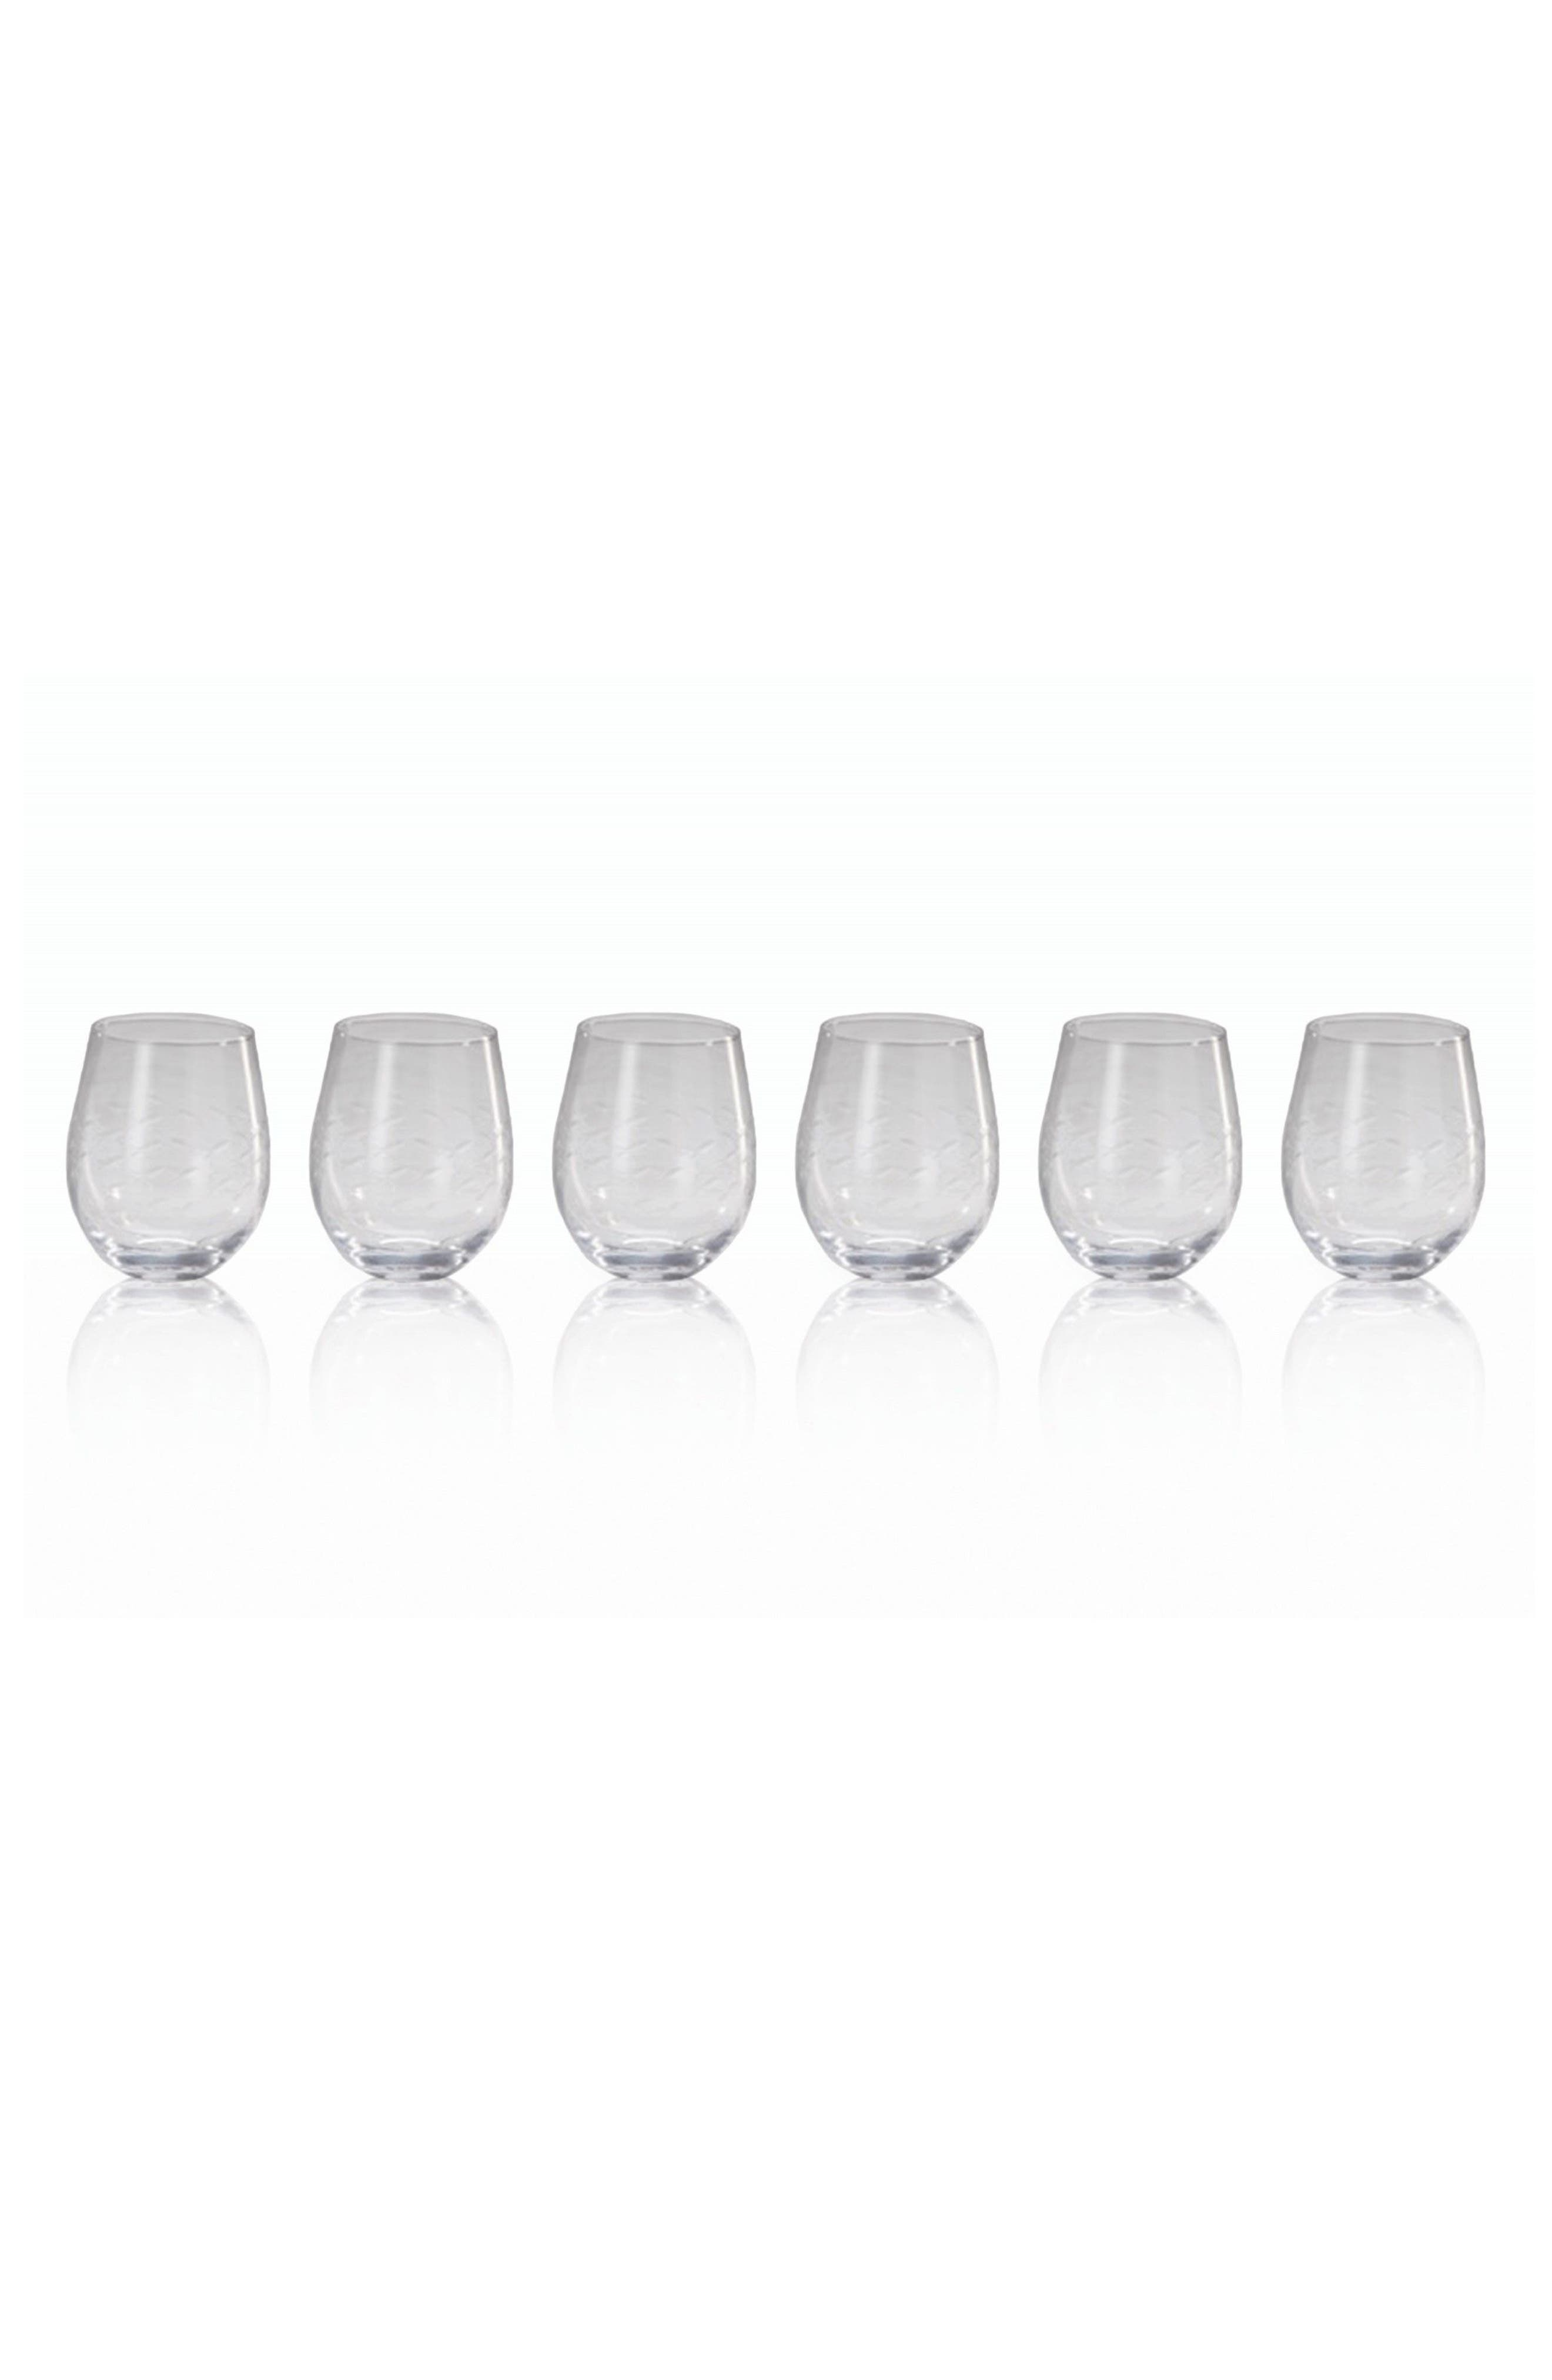 Main Image - Zodax Keely Set of 6 Stemless Wine Glasses